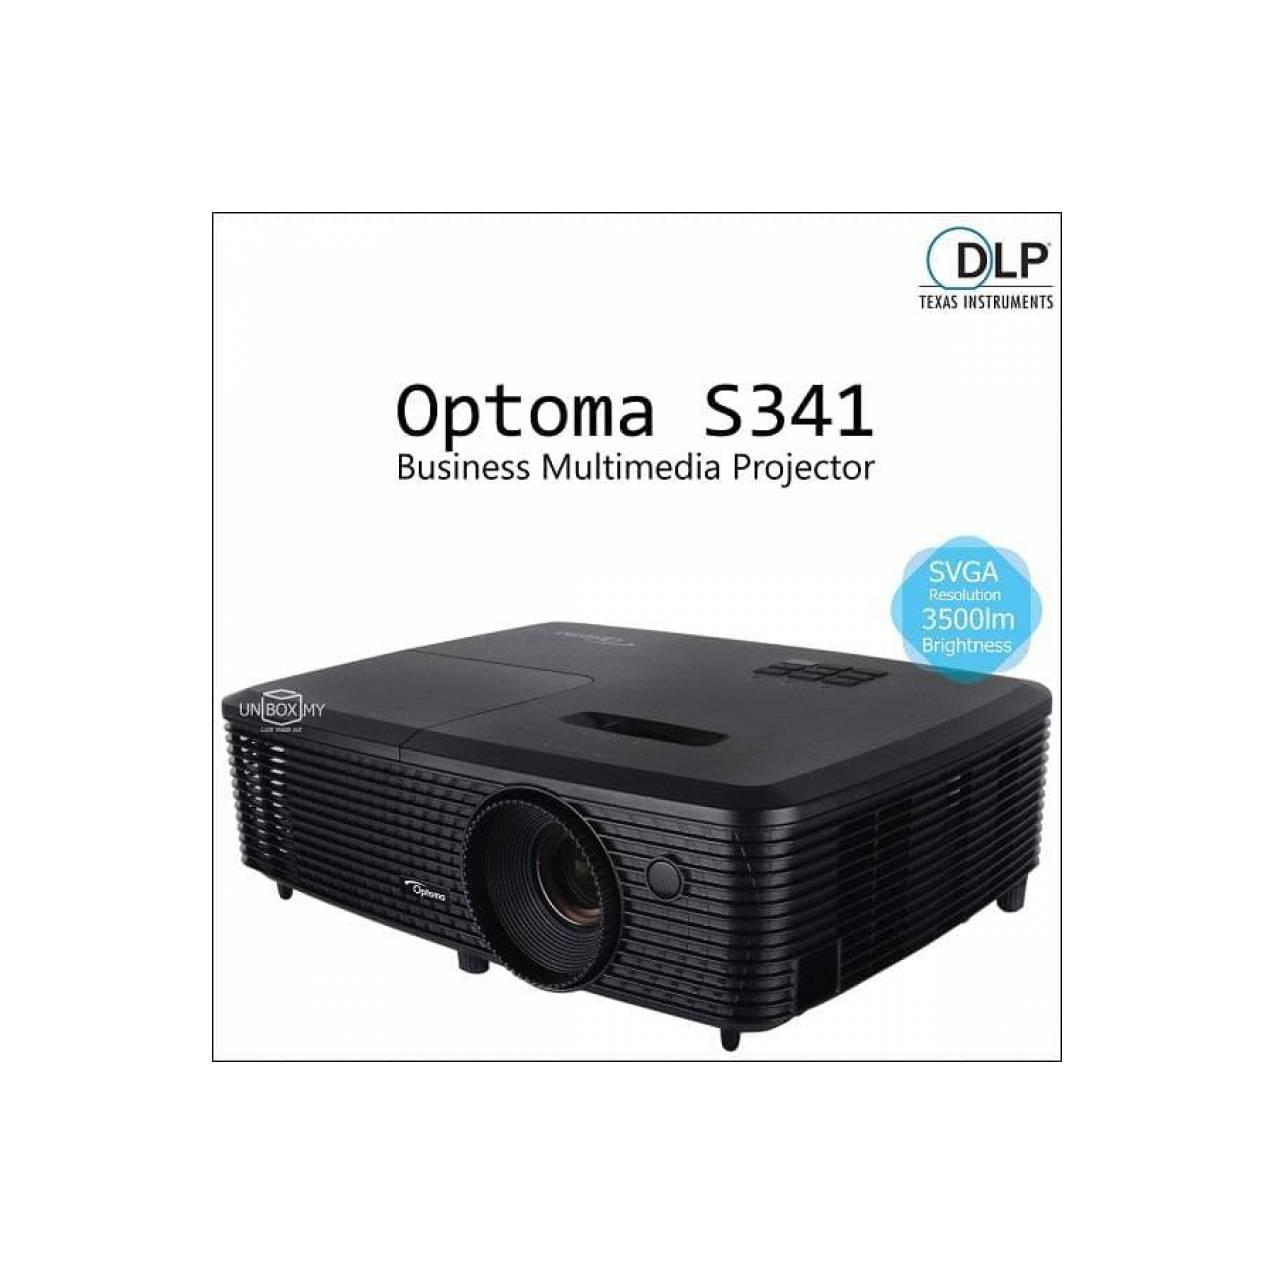 Buy Sell Cheapest Projector Full 3d Best Quality Product Deals Unic Uc46 Mini Portable Hd 1080p Support Red And Blue Effect With Wifi Connection Optoma S341 3500 Ansi Svga